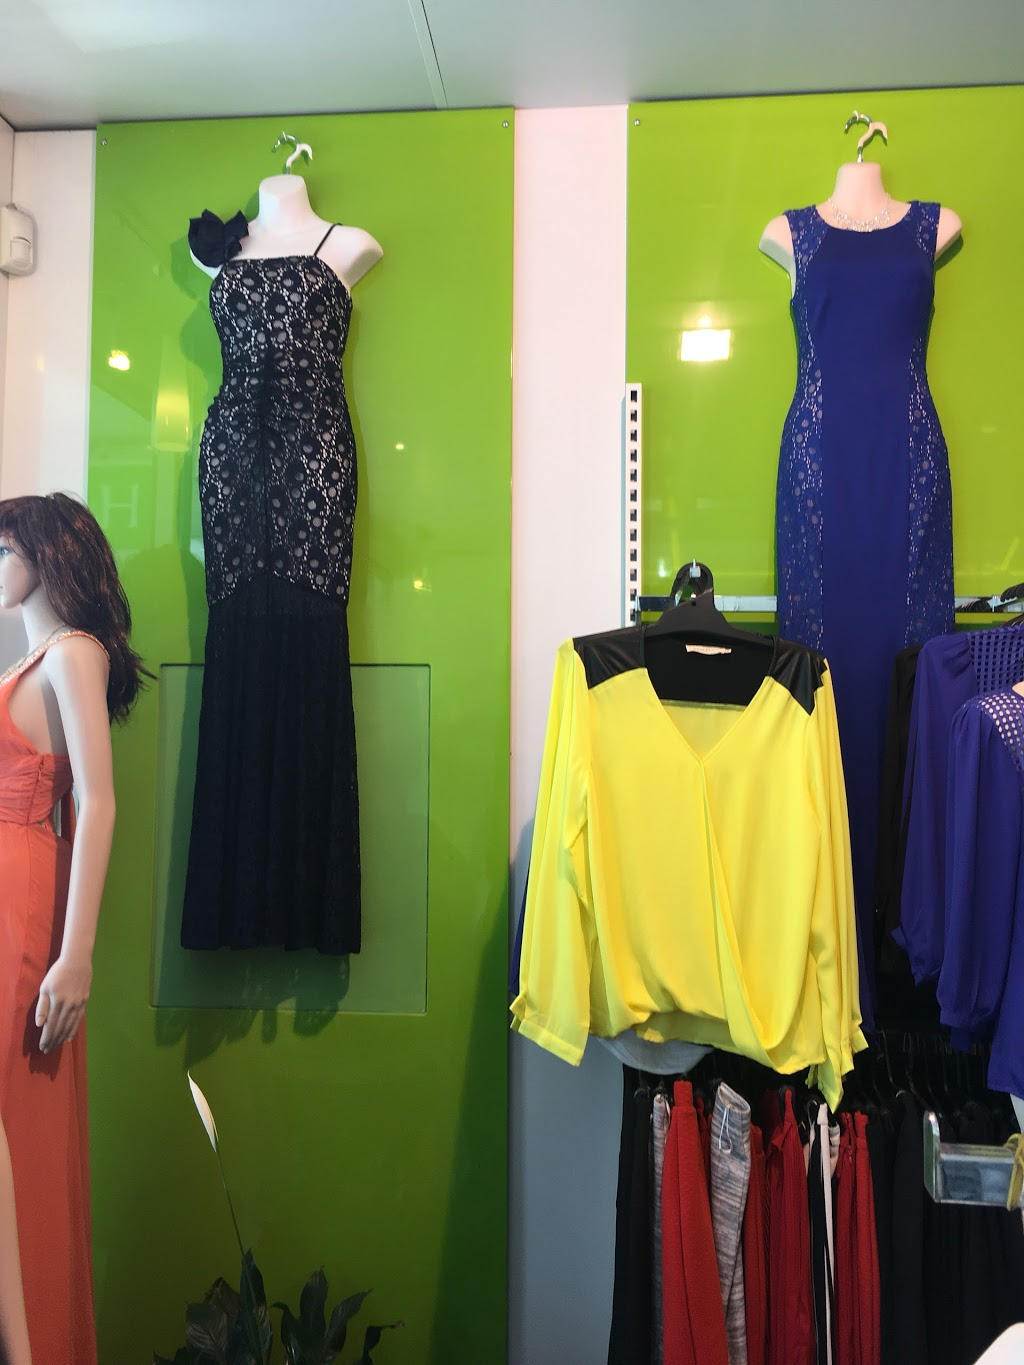 H&Y Fashion | clothing store | 141 Hopkins St, Footscray VIC 3011, Australia | 0399951932 OR +61 3 9995 1932